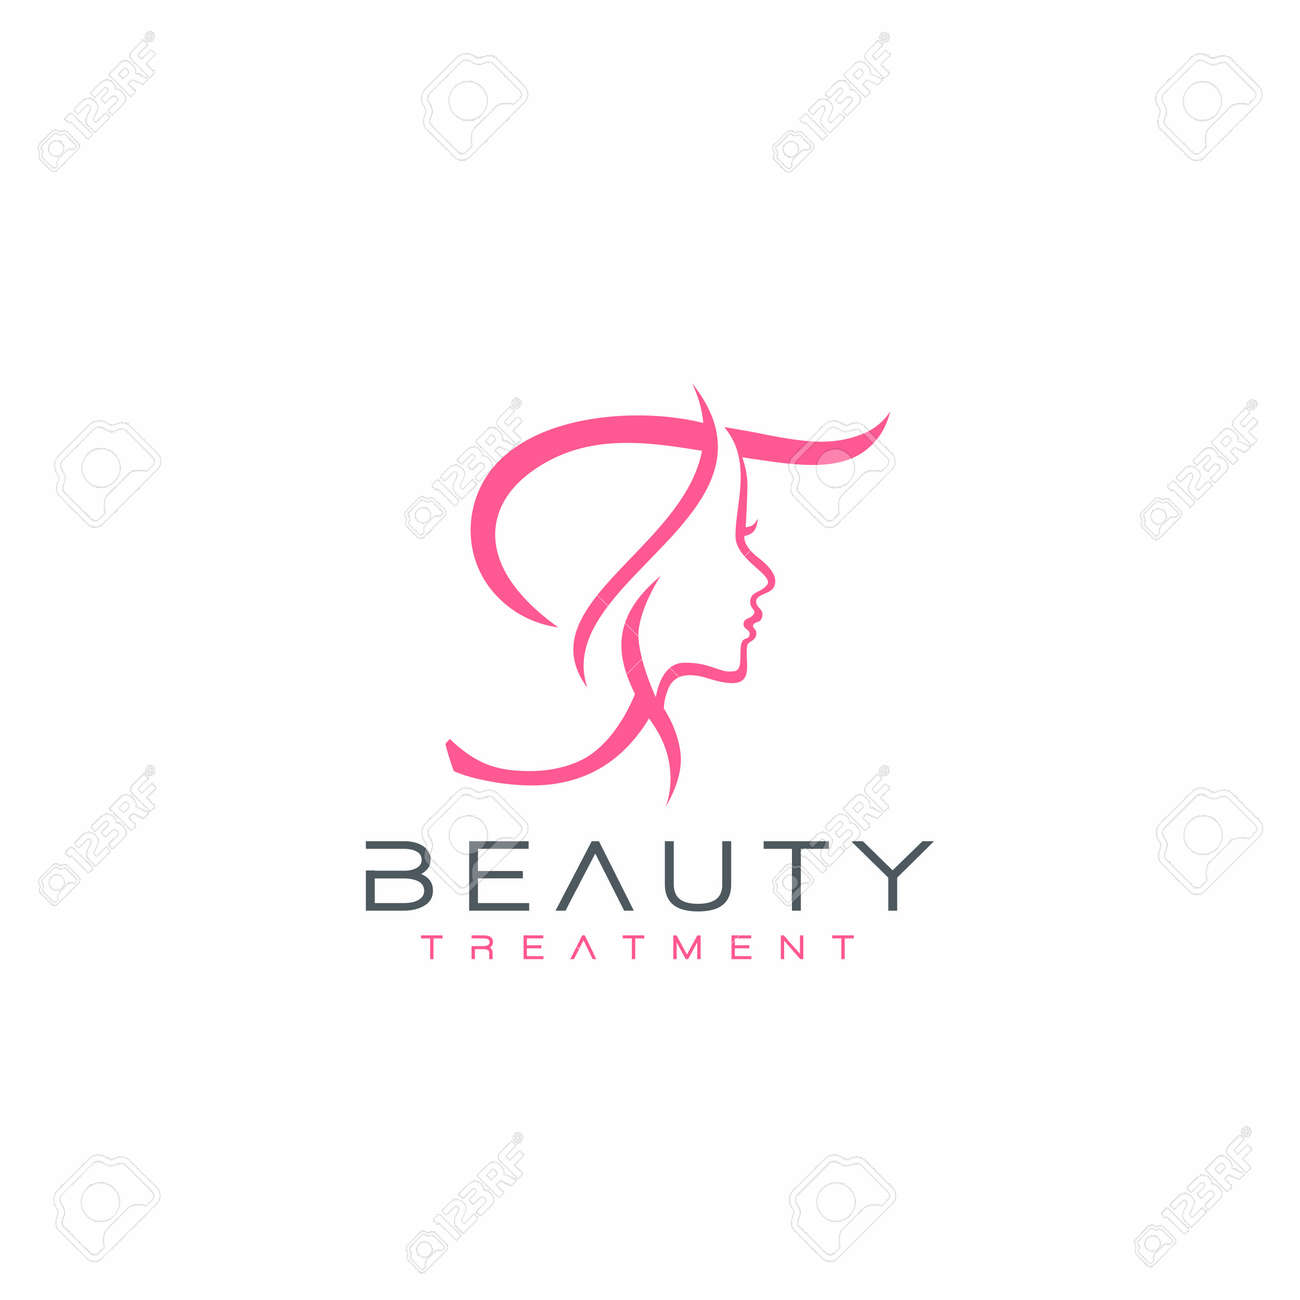 Letter T Beauty Face Logo Design Vector Icon Royalty Free Cliparts Vectors And Stock Illustration Image 142538918